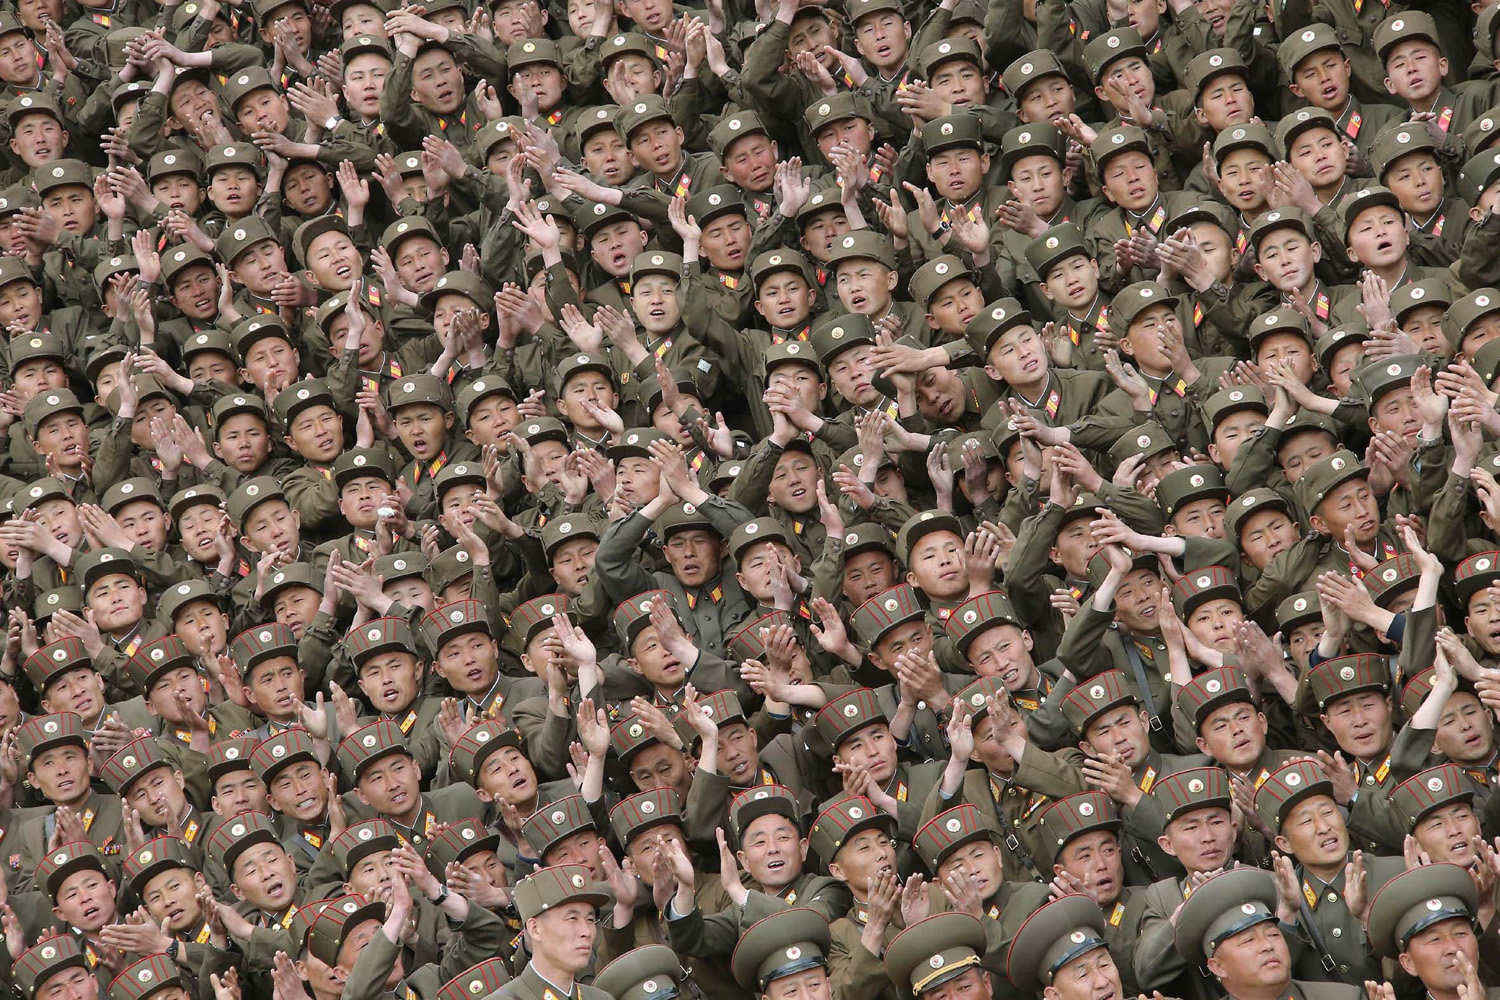 Soldier-builders of KPA Units 966, 462, 101, 489, who took part in building the workers' hostel of Kim Jong Suk Pyongyang Textile Mill, applaud during a photo session with North Korean leader Kim Jong Un in this undated photo released by North Korea's Korean Central News Agency (KCNA) in Pyongyang on May 6, 2014.